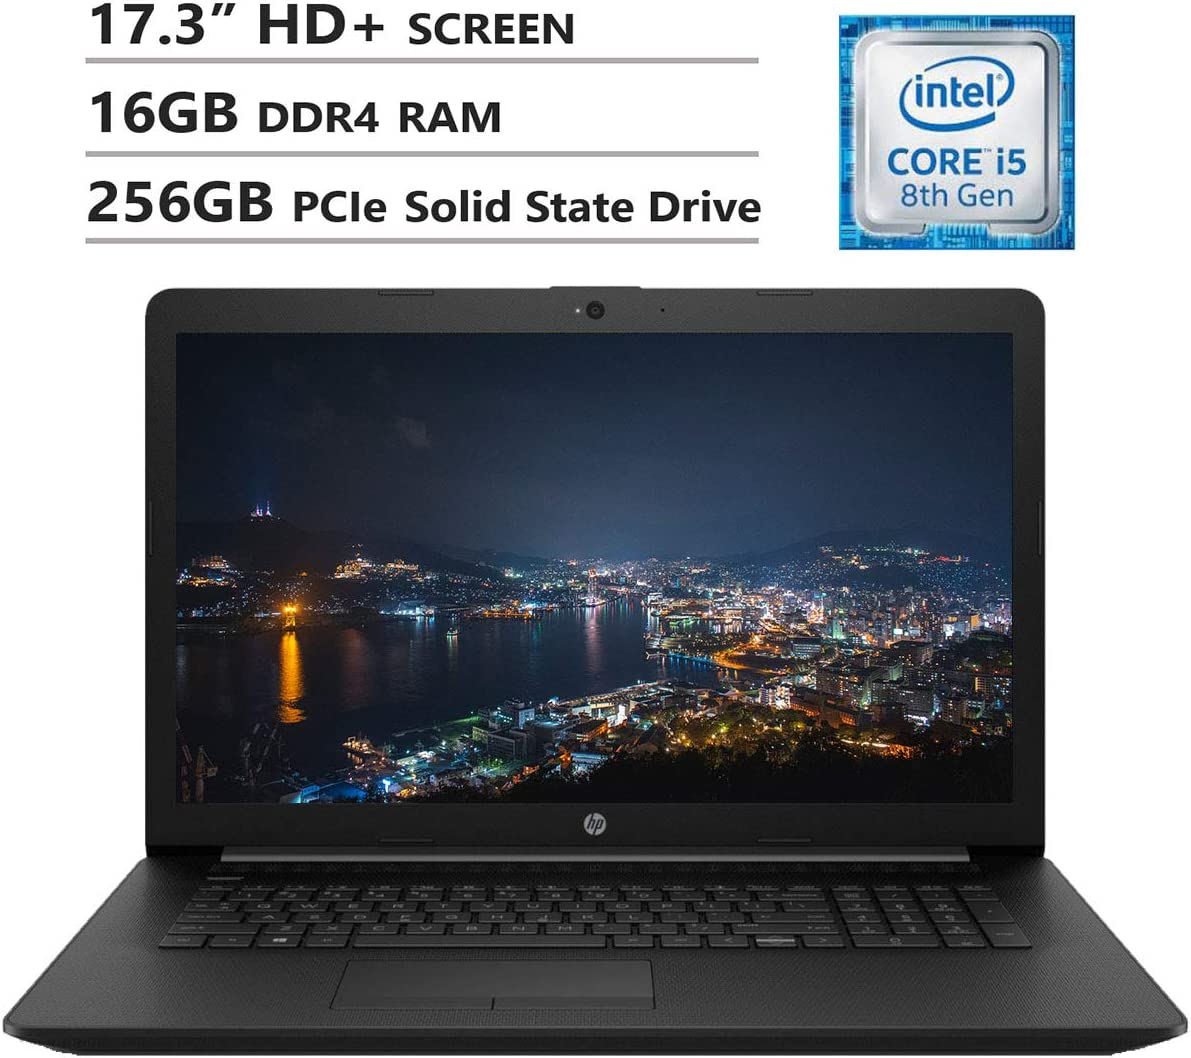 "HP Notebook 17.3"" HD+ Screen Laptop. Intel Core i5-8265U Up to 3.9GHz, 16GB DDR4 RAM, 256GB PCIe Solid State Drive, Wi-Fi+Bluetooth Combo, HDMI, USB 3.0, RJ-45, DVD-RW, Windows 10, Black"